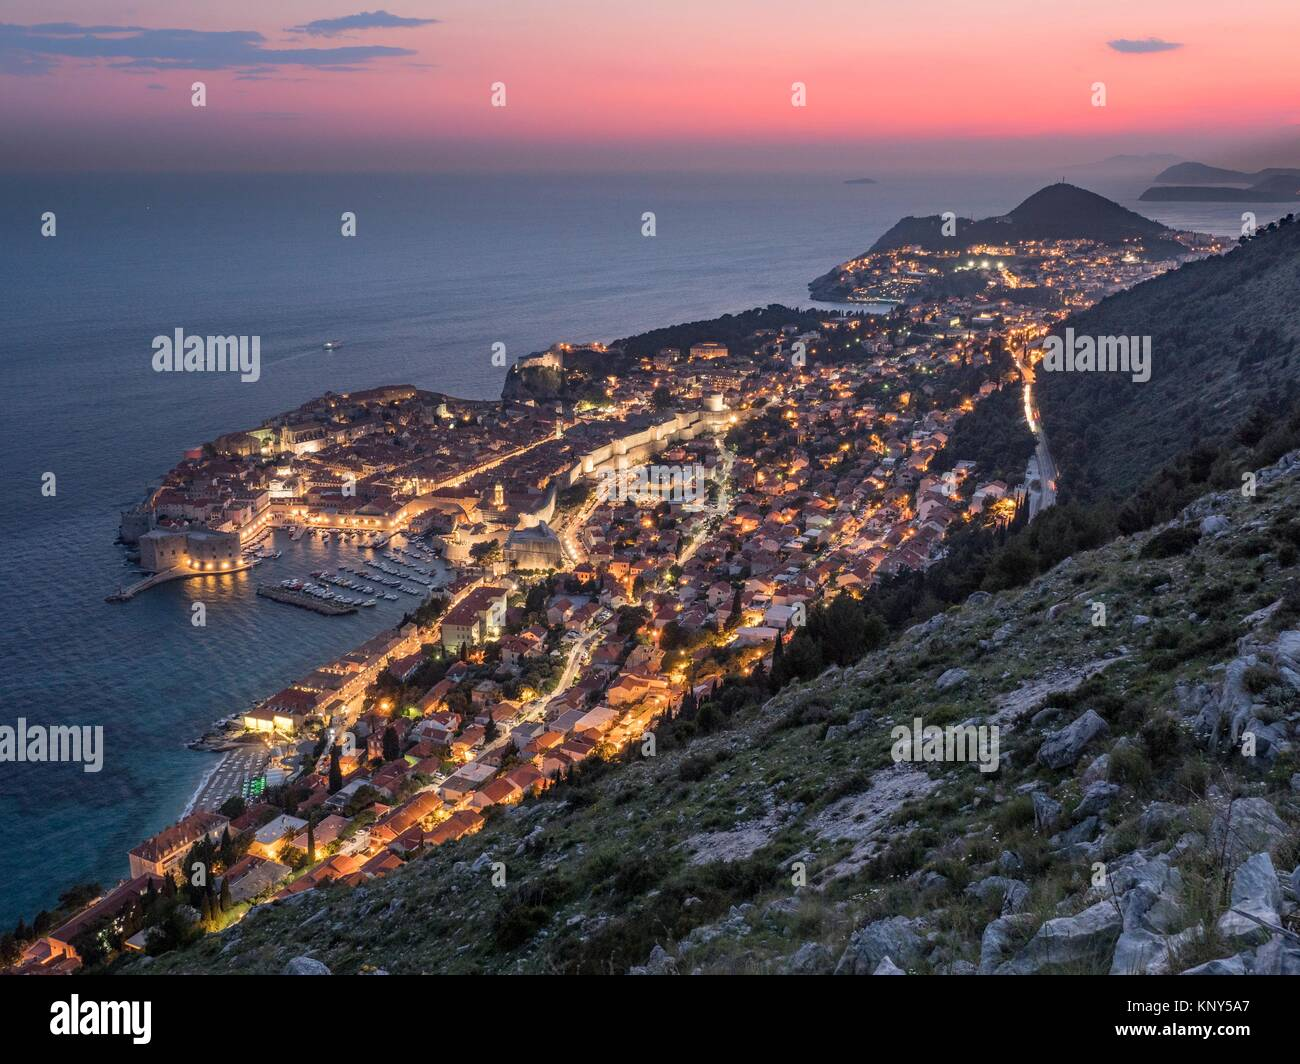 Dubrovnik Croatia Overview at Night. - Stock Image